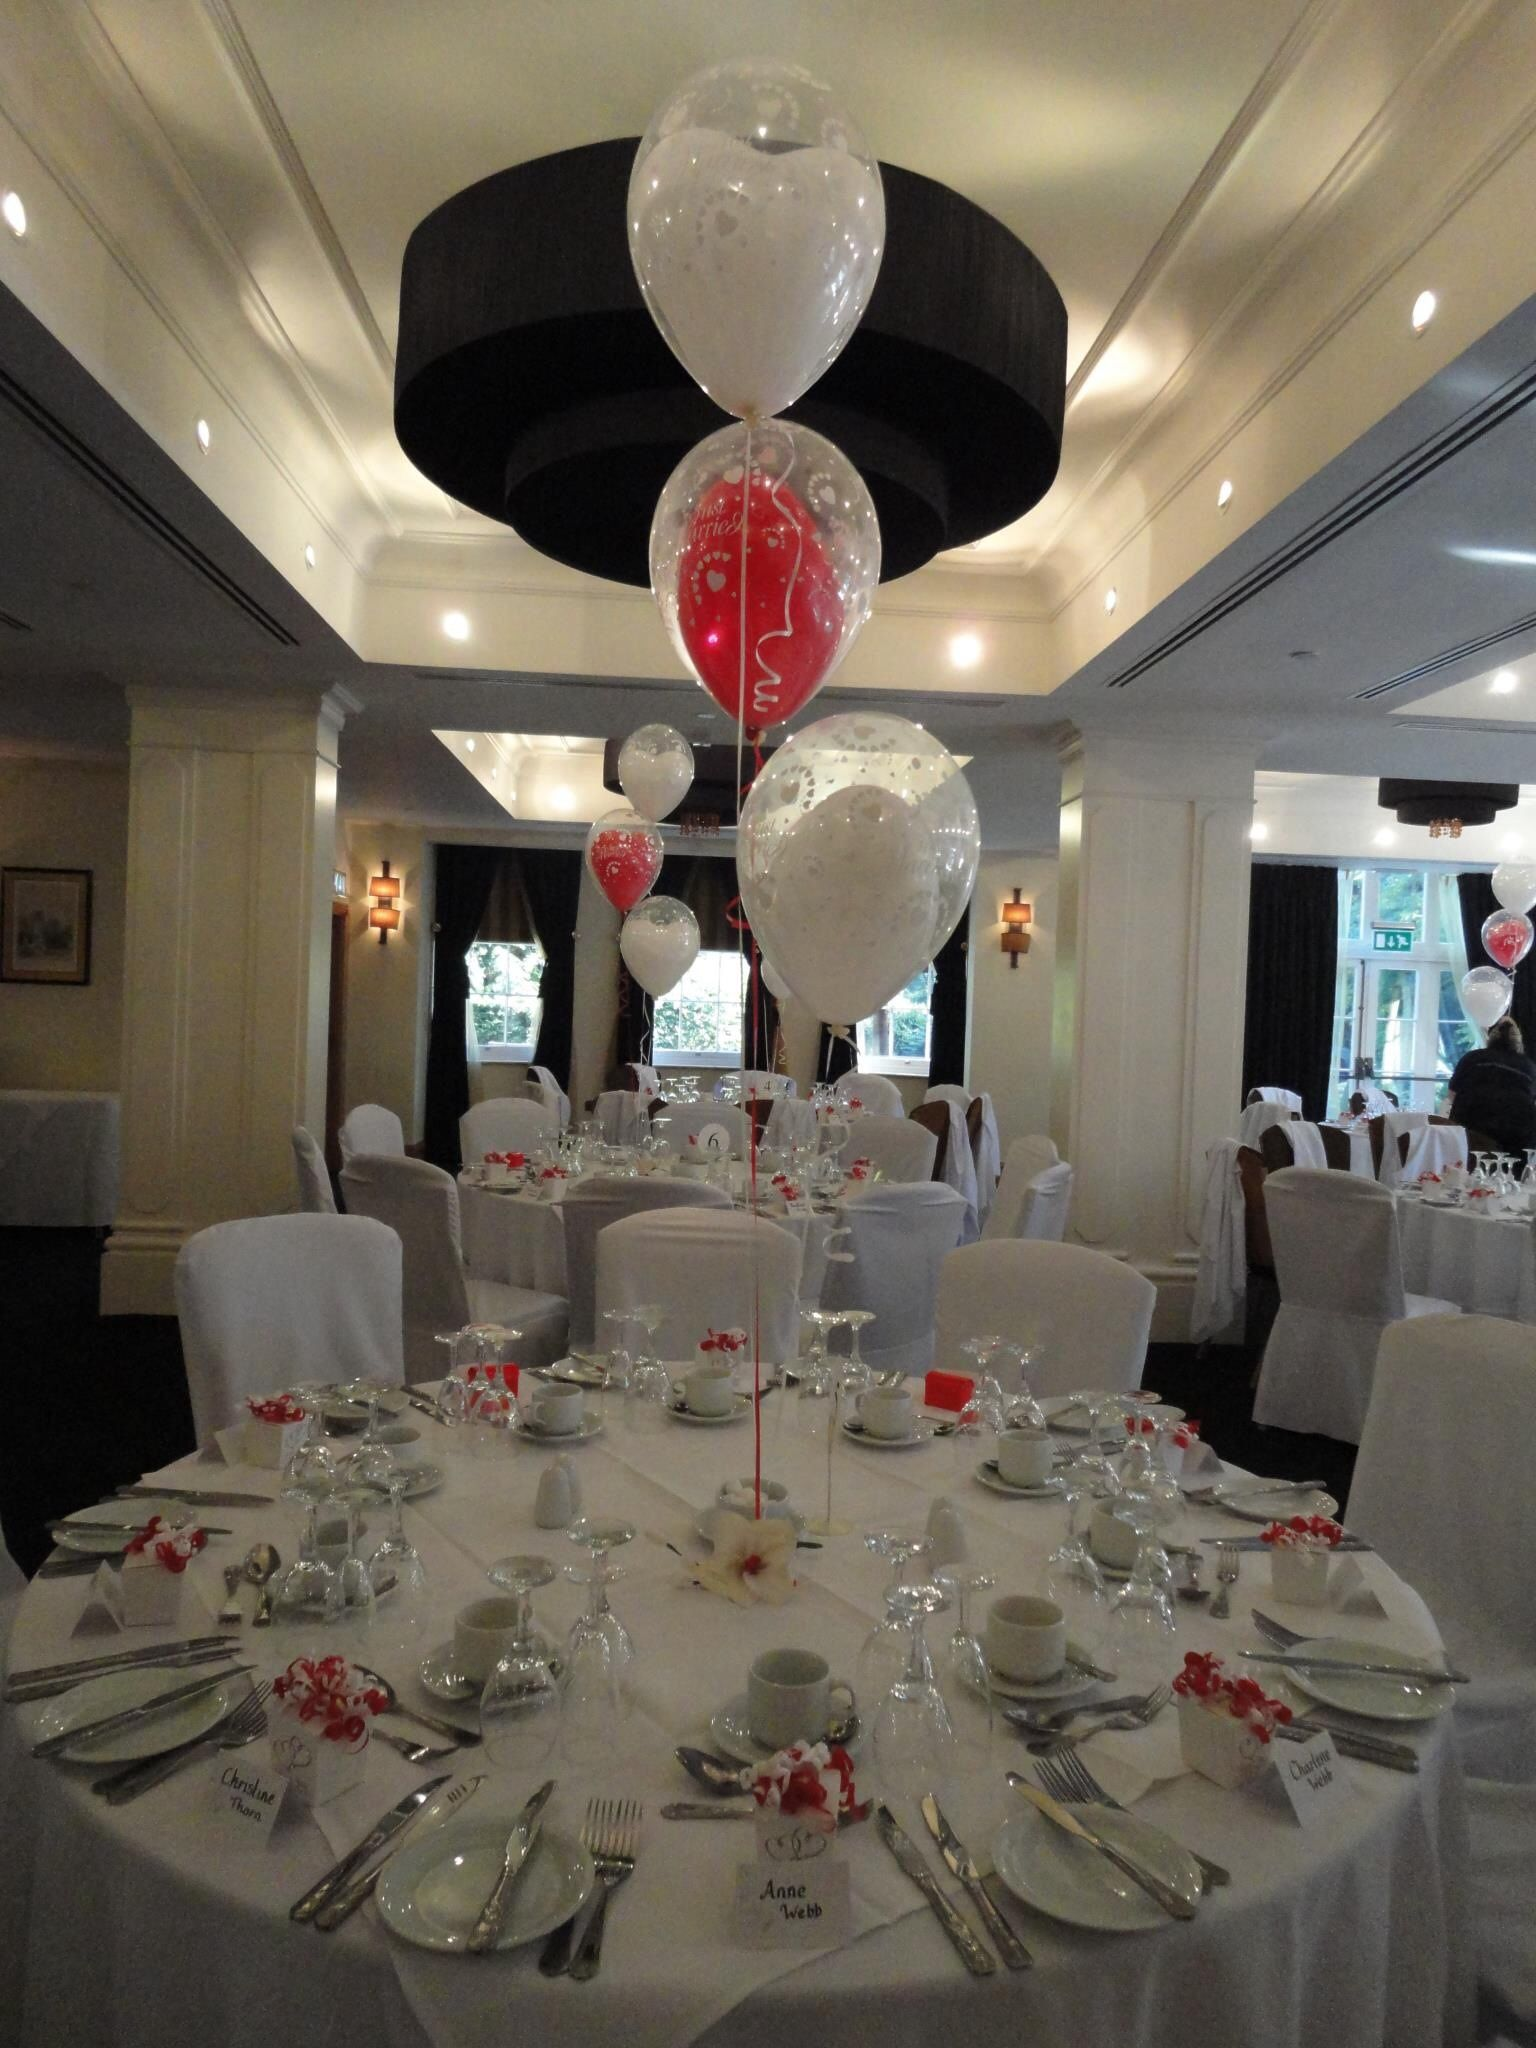 Double Bubble Just Married Balloons in red and white